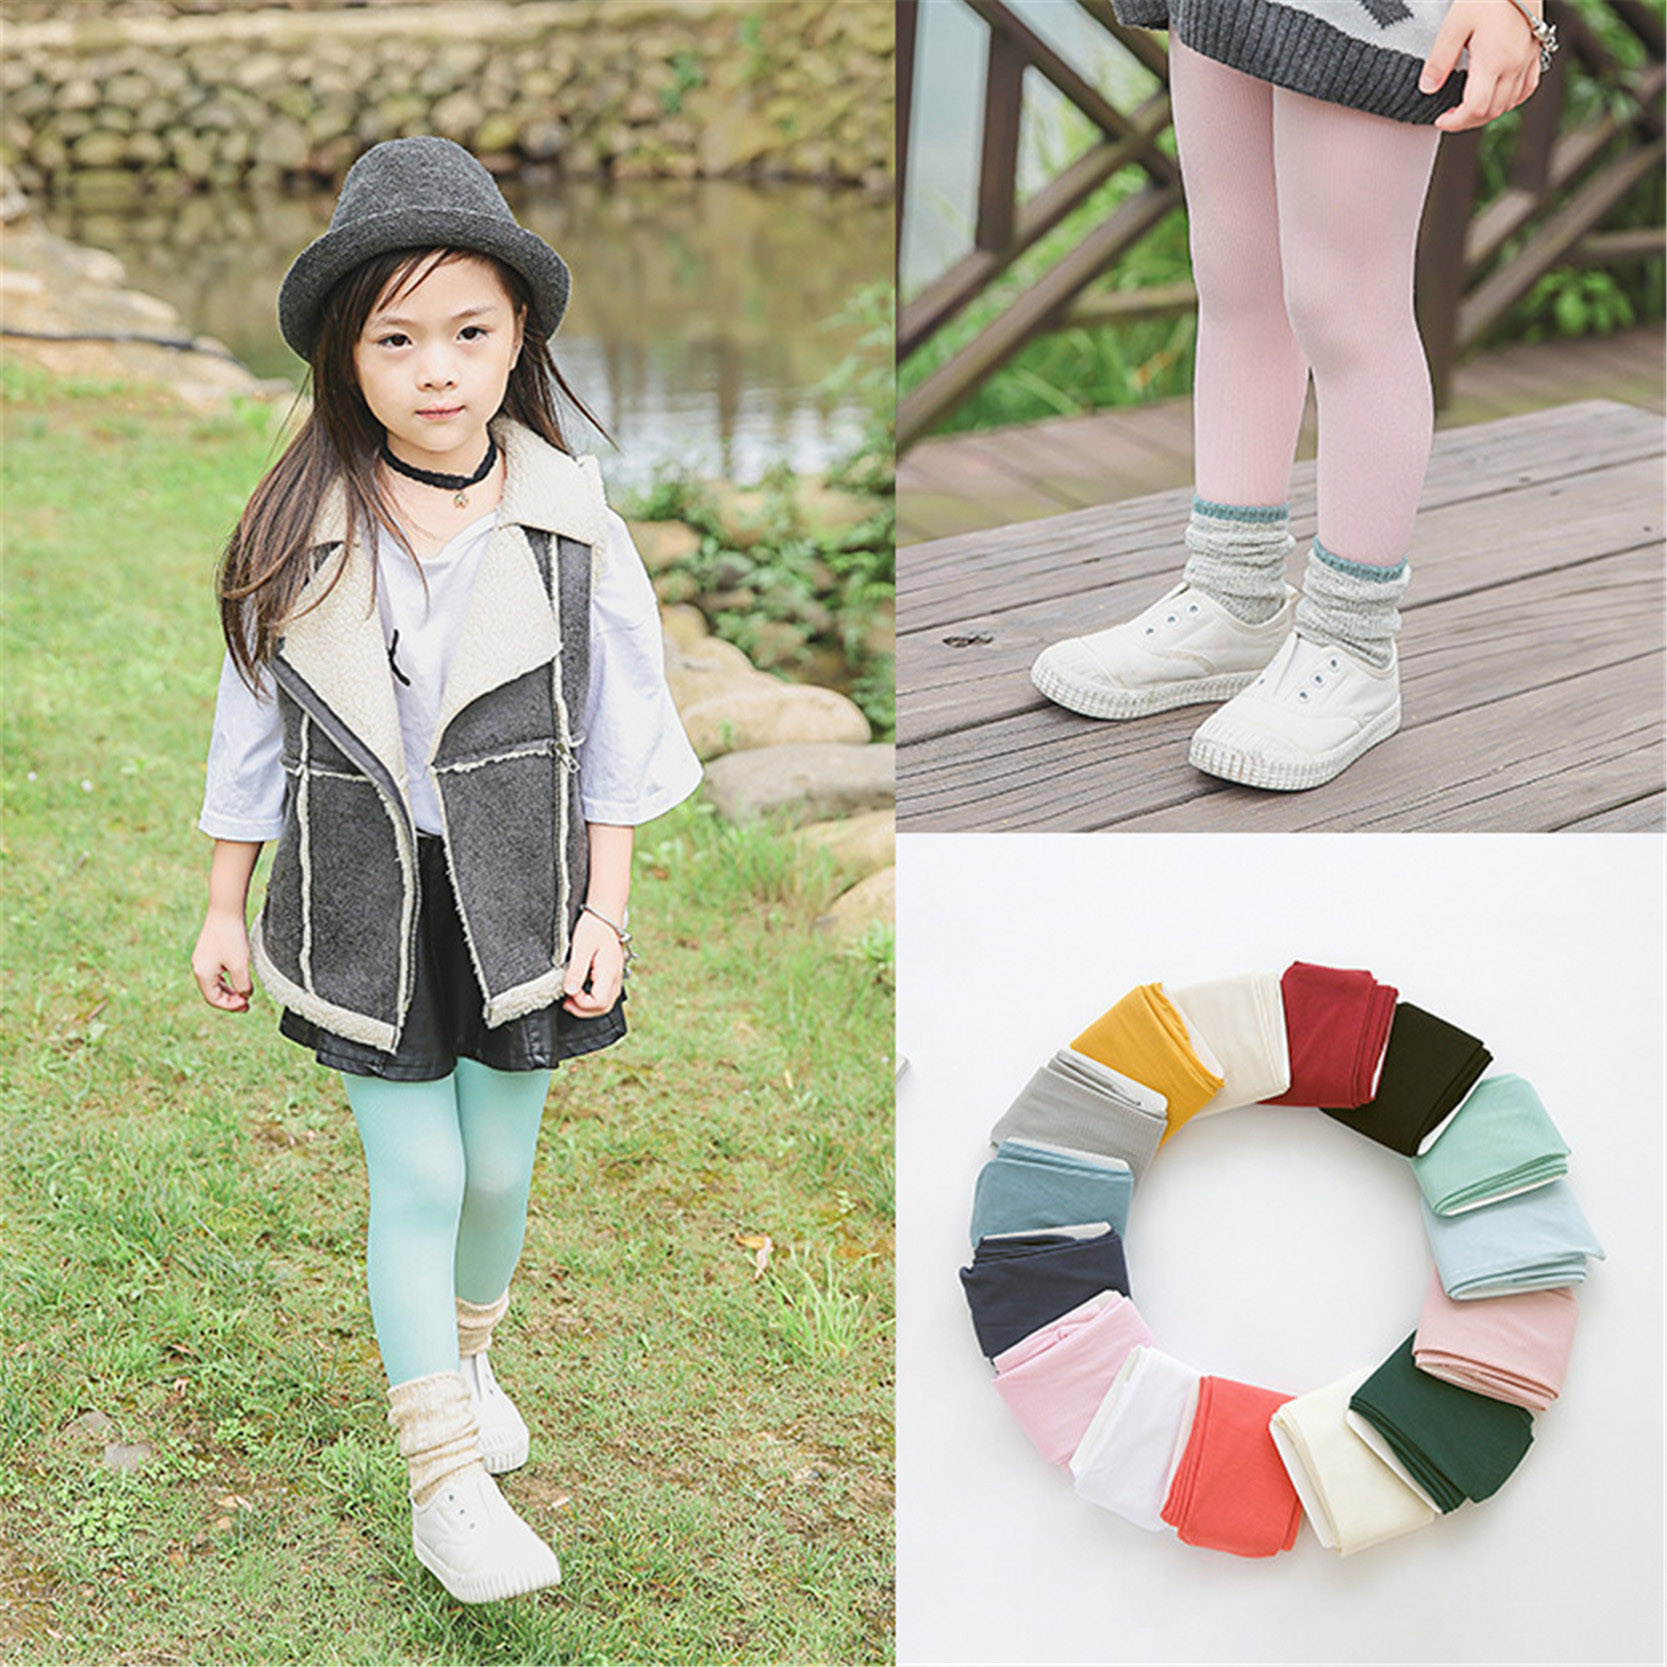 Solid Color Soft Kawaii Tights Lovely Velvet Children Girl Kids Pantyhose Tights Dance Tights Stocking For Baby 2-12 Years rib knit tights